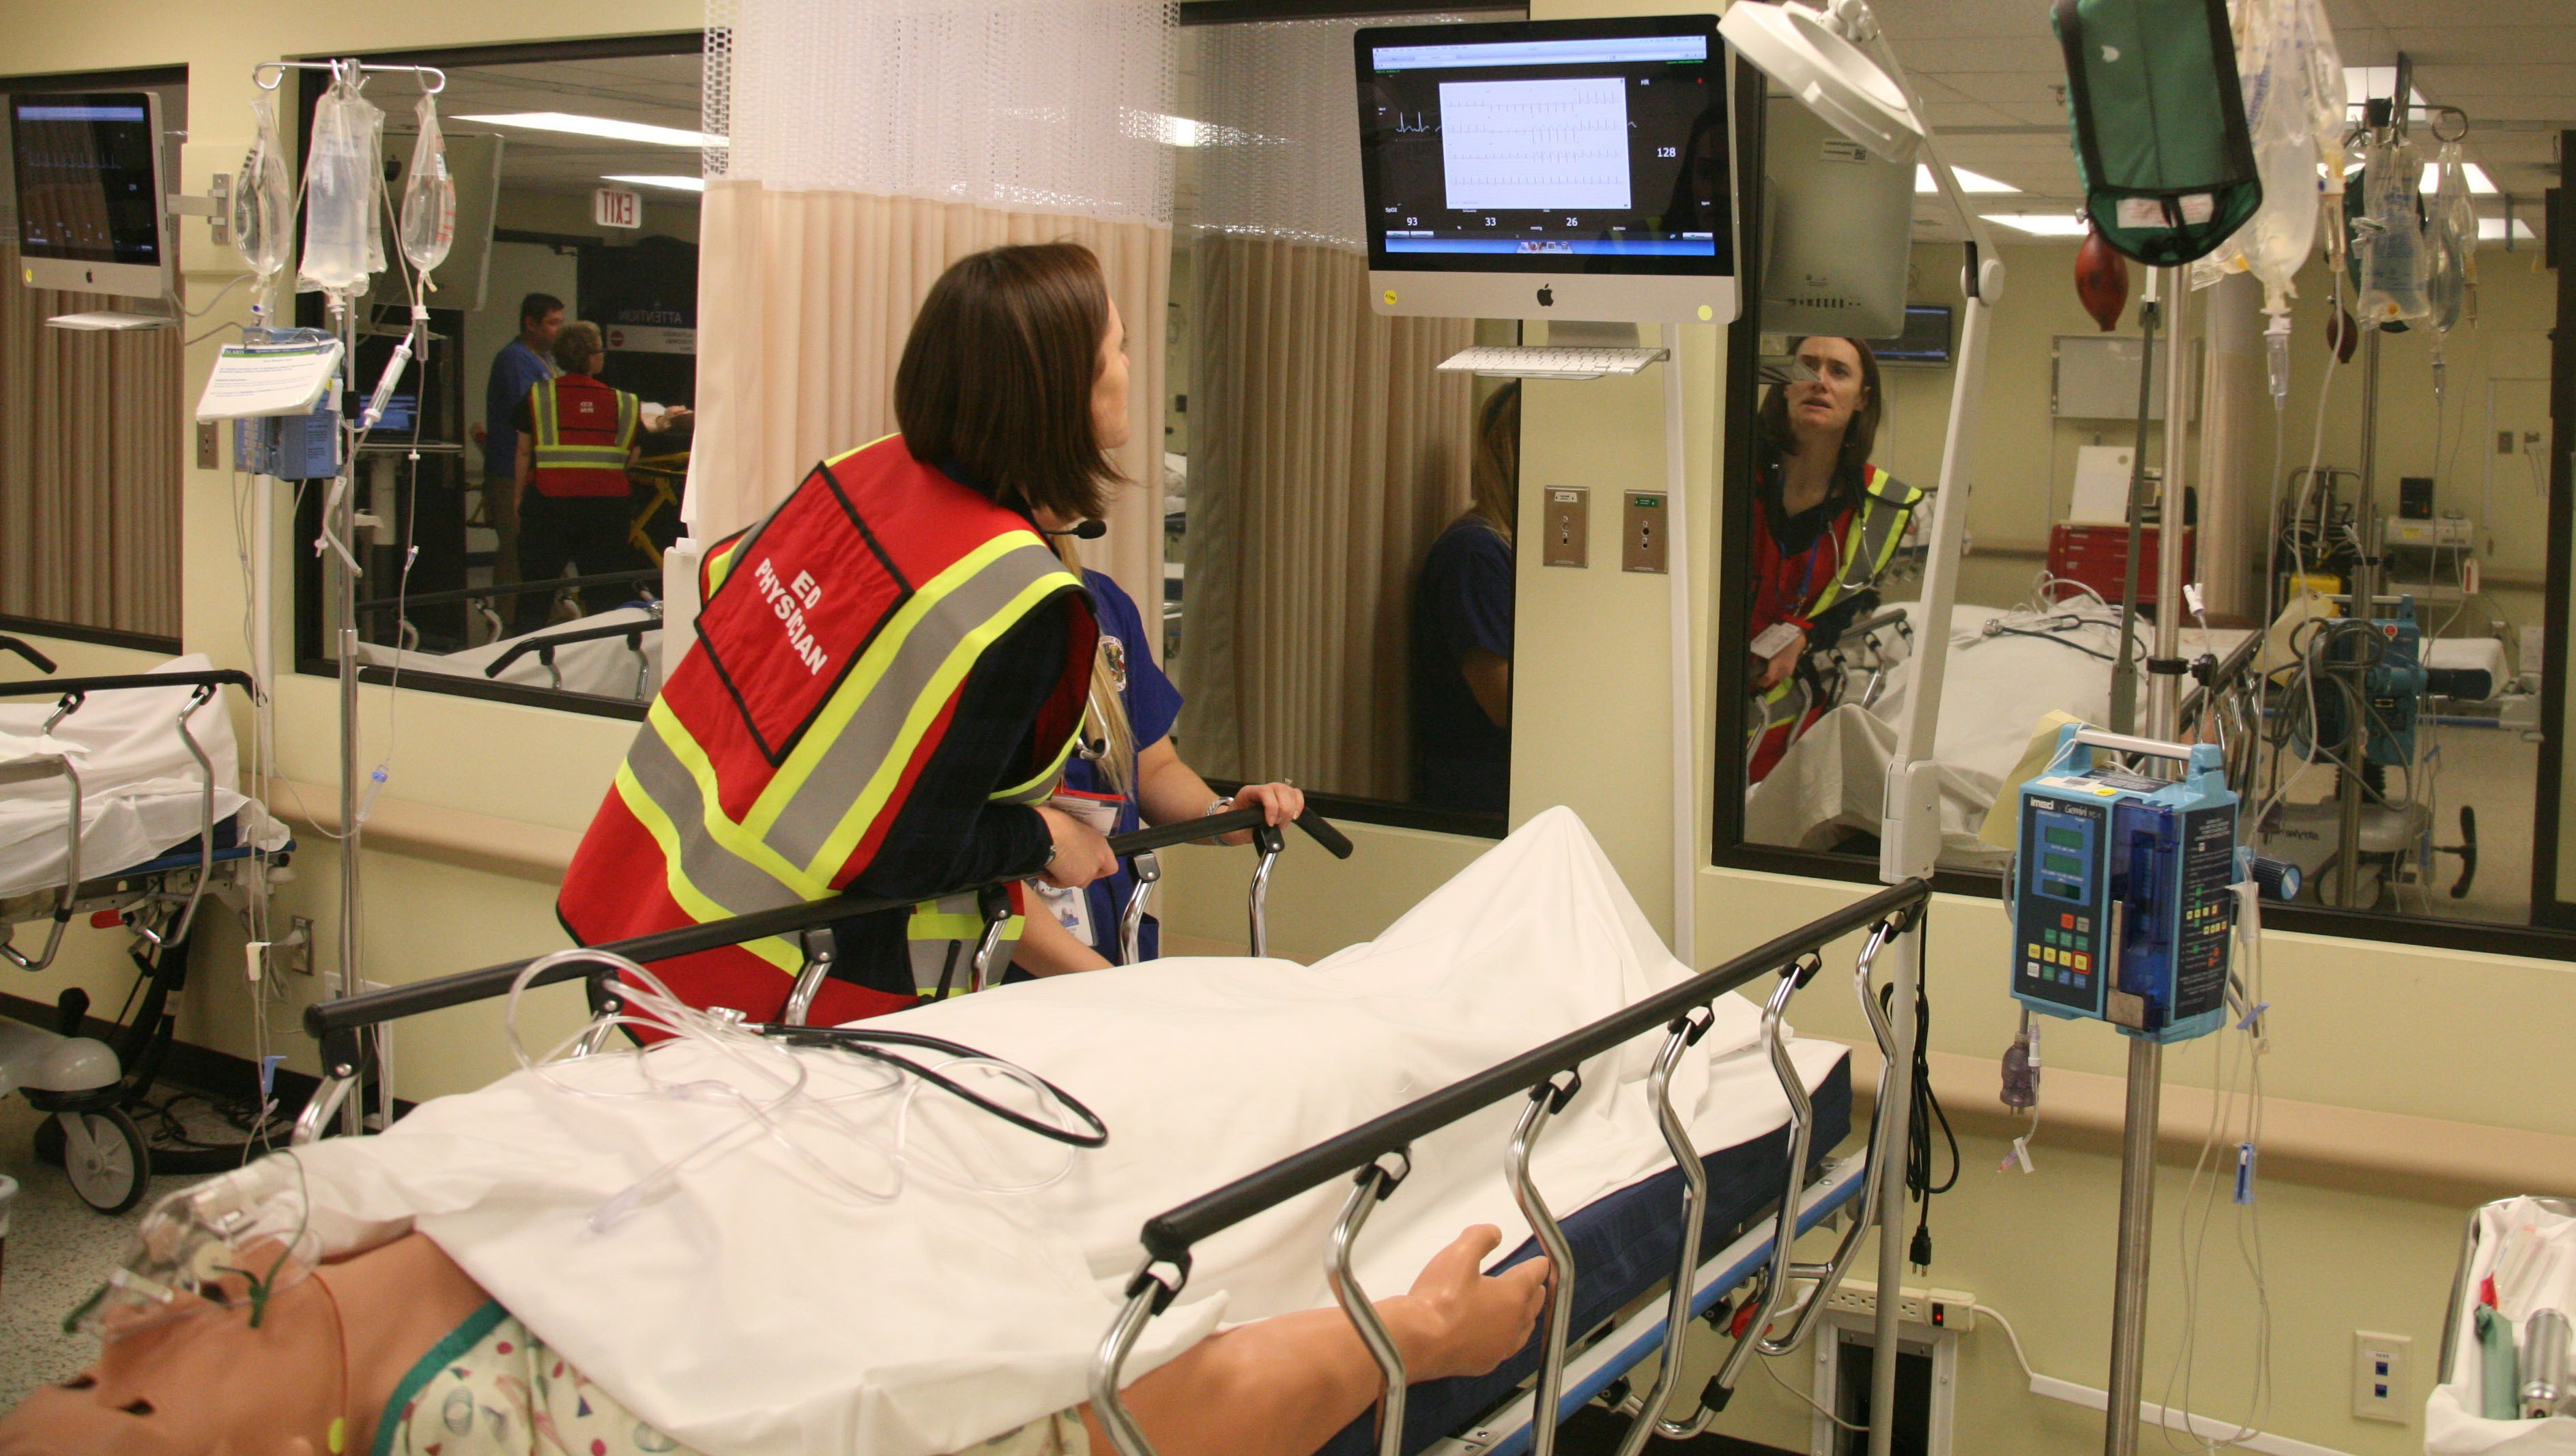 Student checking vitals of medical patient simulator in the emergency room during capstone mass casualty exercise.